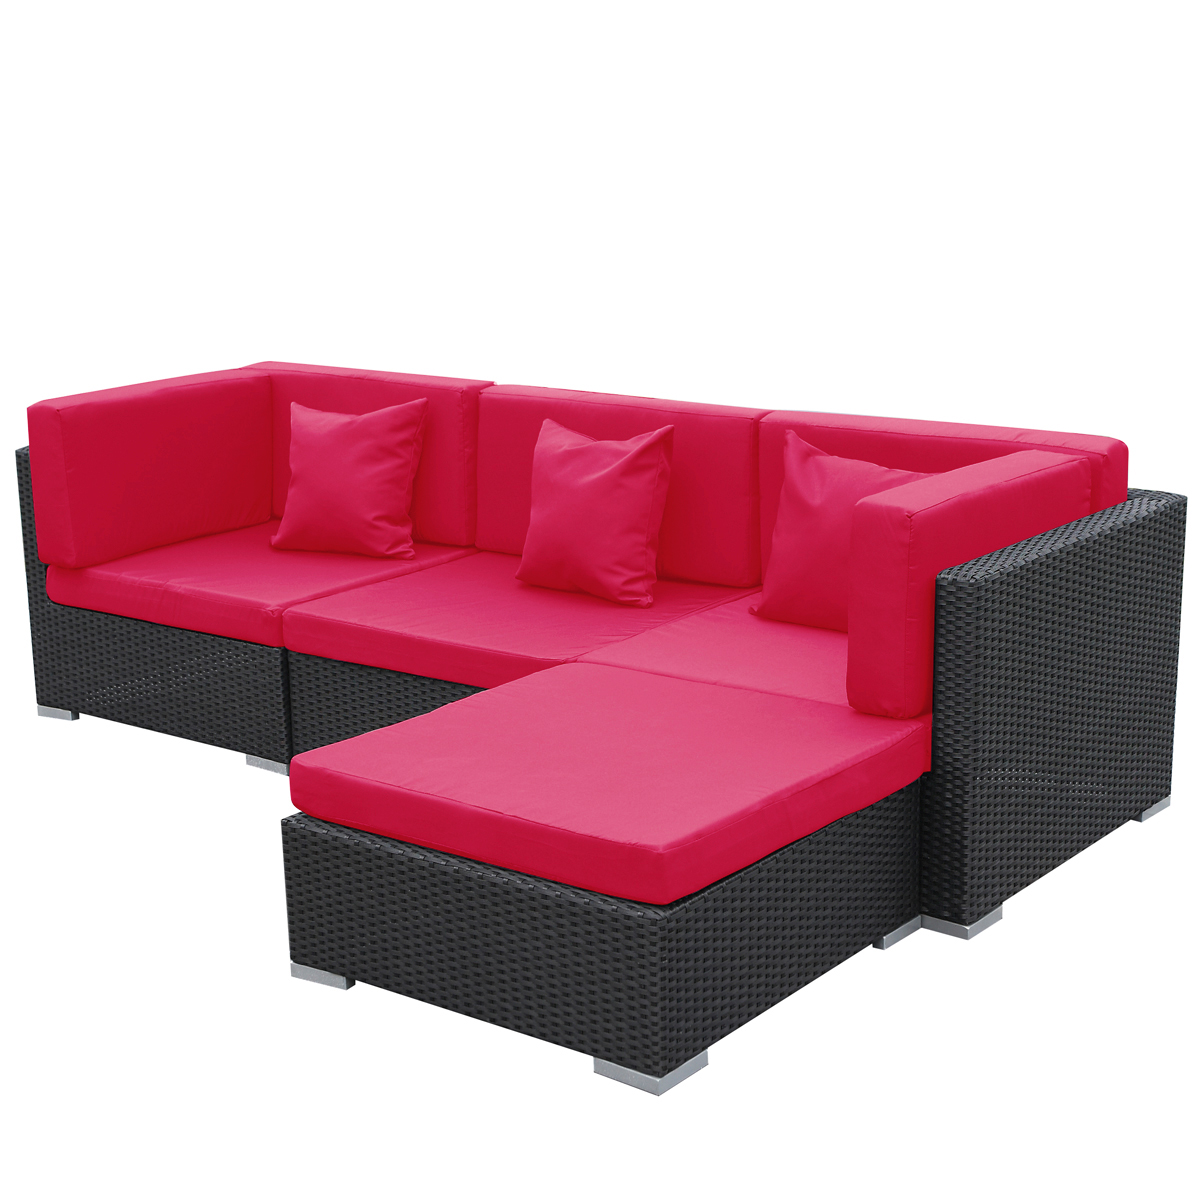 gartenm bel gartenlounge polyrattan sofa bergen rot schwarz aluminium lounge ebay. Black Bedroom Furniture Sets. Home Design Ideas